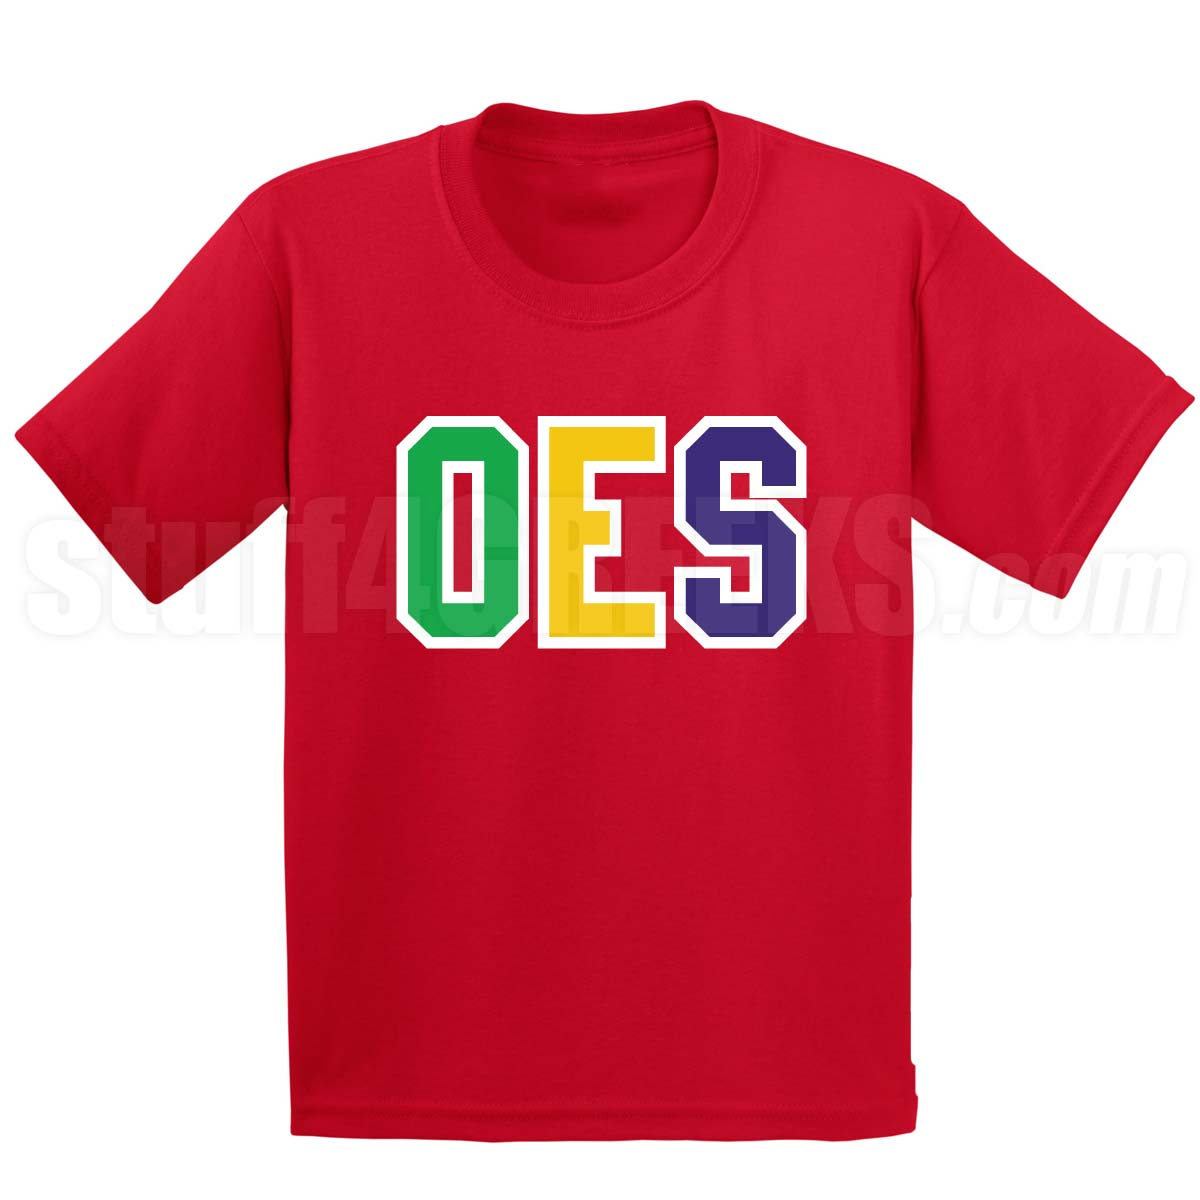 Oes screen printed t shirt for Order screen printed shirts